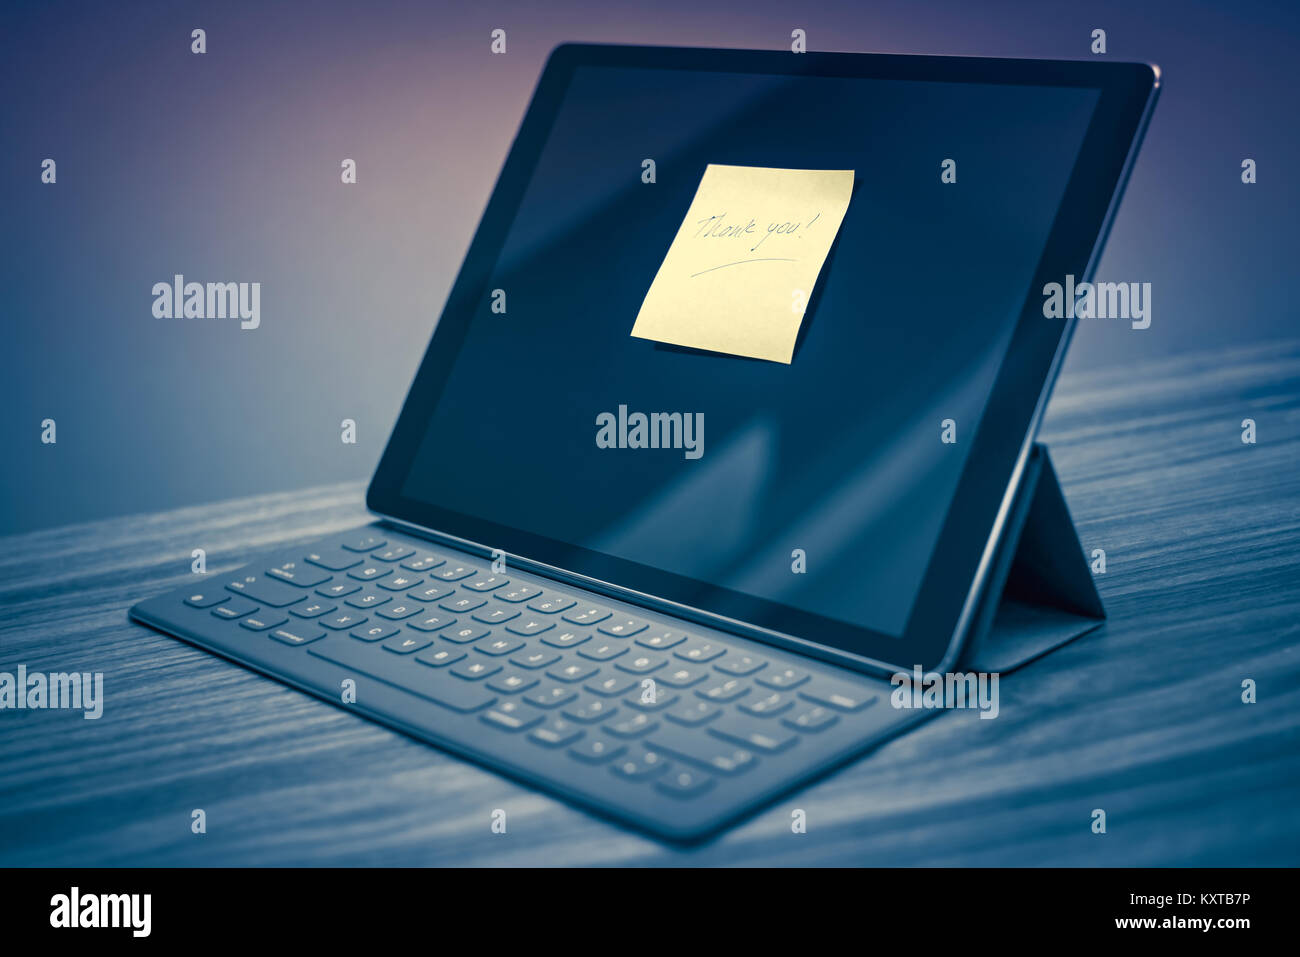 Thank you note on digital tablet screen standing at office desk - Stock Image